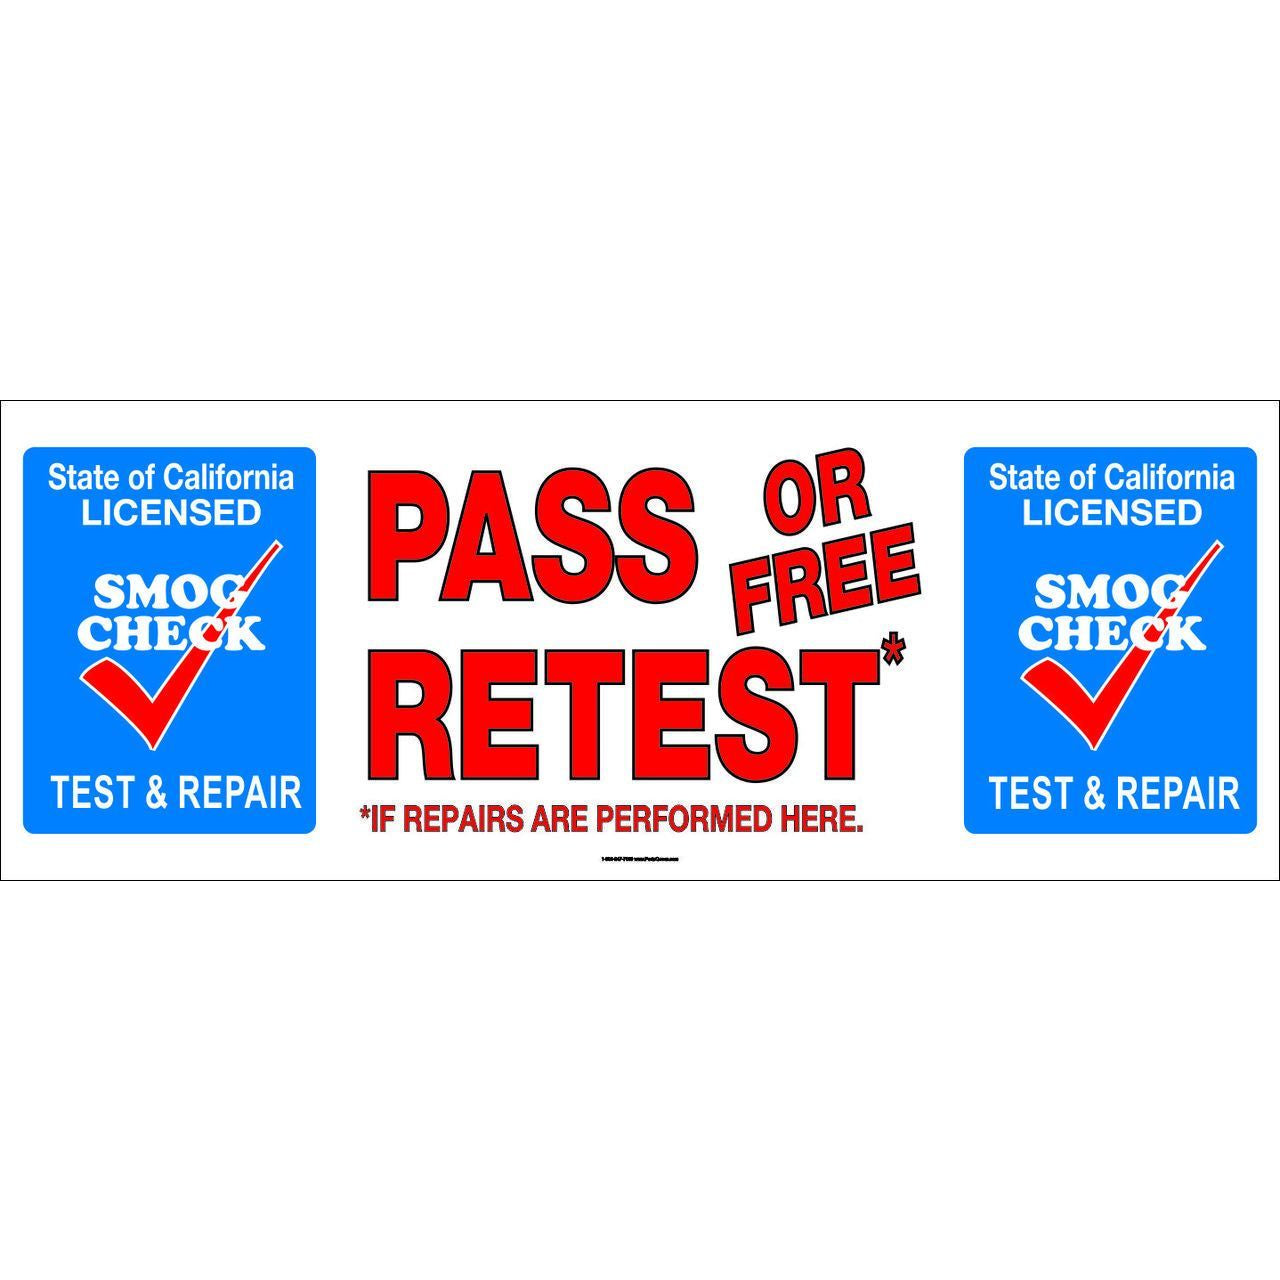 PASS OR FREE RETEST SB-9